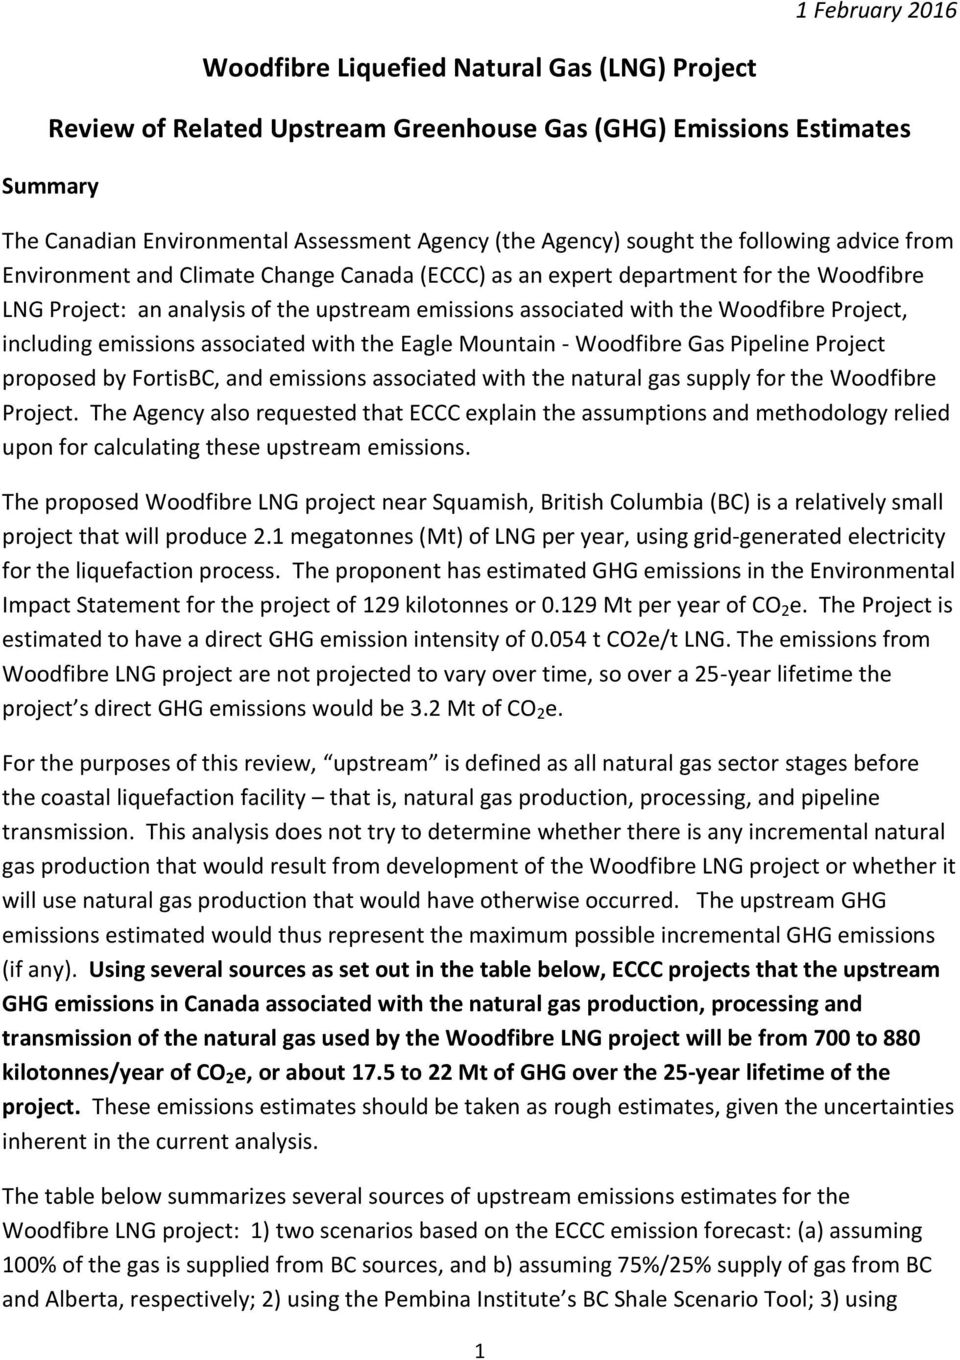 Woodfibre Project, including emissions associated with the Eagle Mountain - Woodfibre Gas Pipeline Project proposed by FortisBC, and emissions associated with the natural gas supply for the Woodfibre